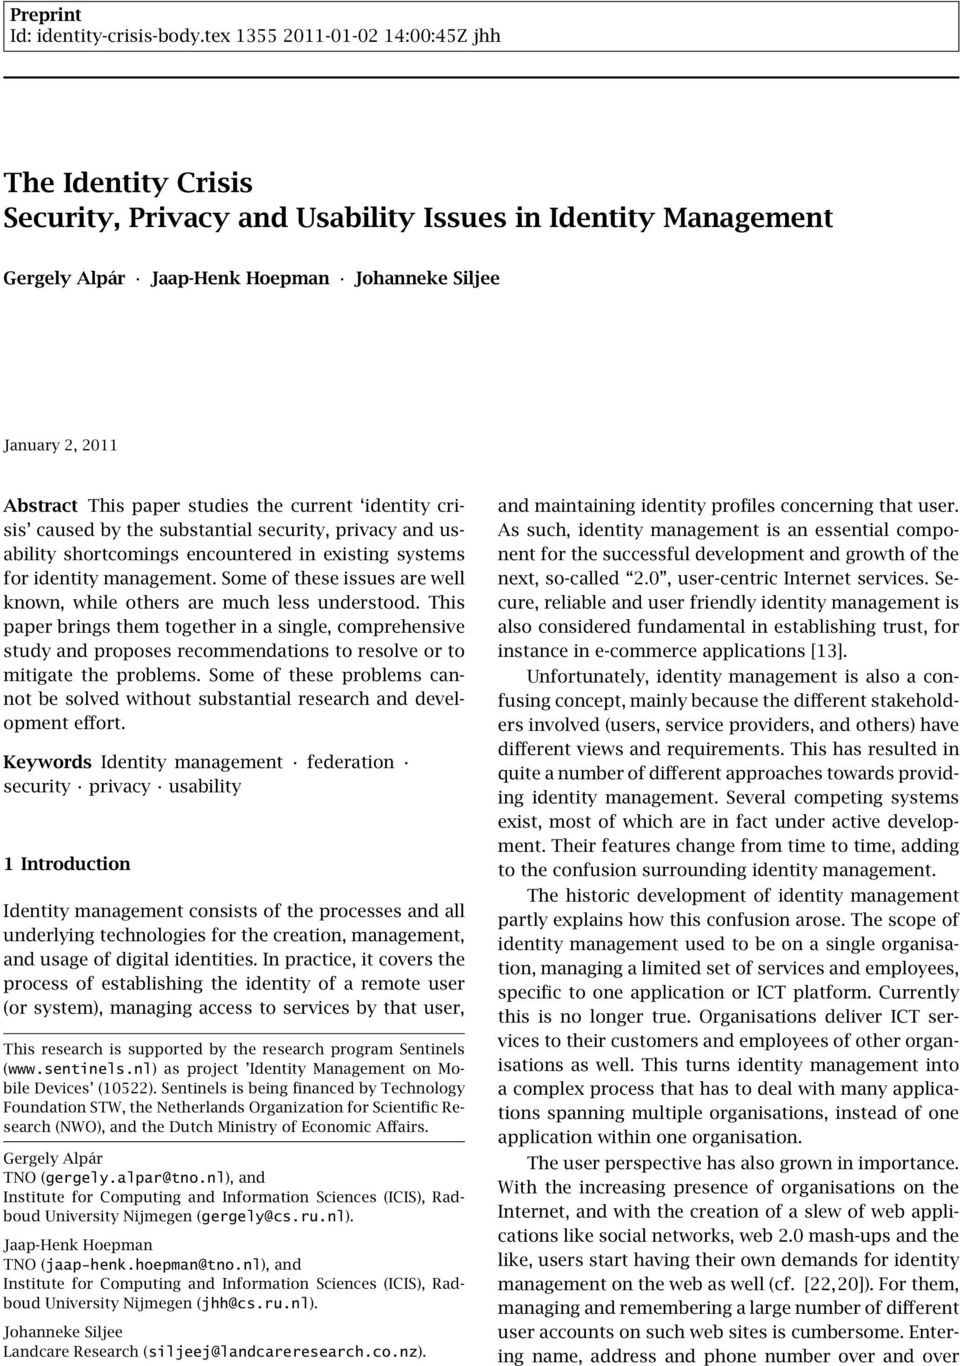 paper studies the current identity crisis caused by the substantial security, privacy and usability shortcomings encountered in existing systems for identity management.